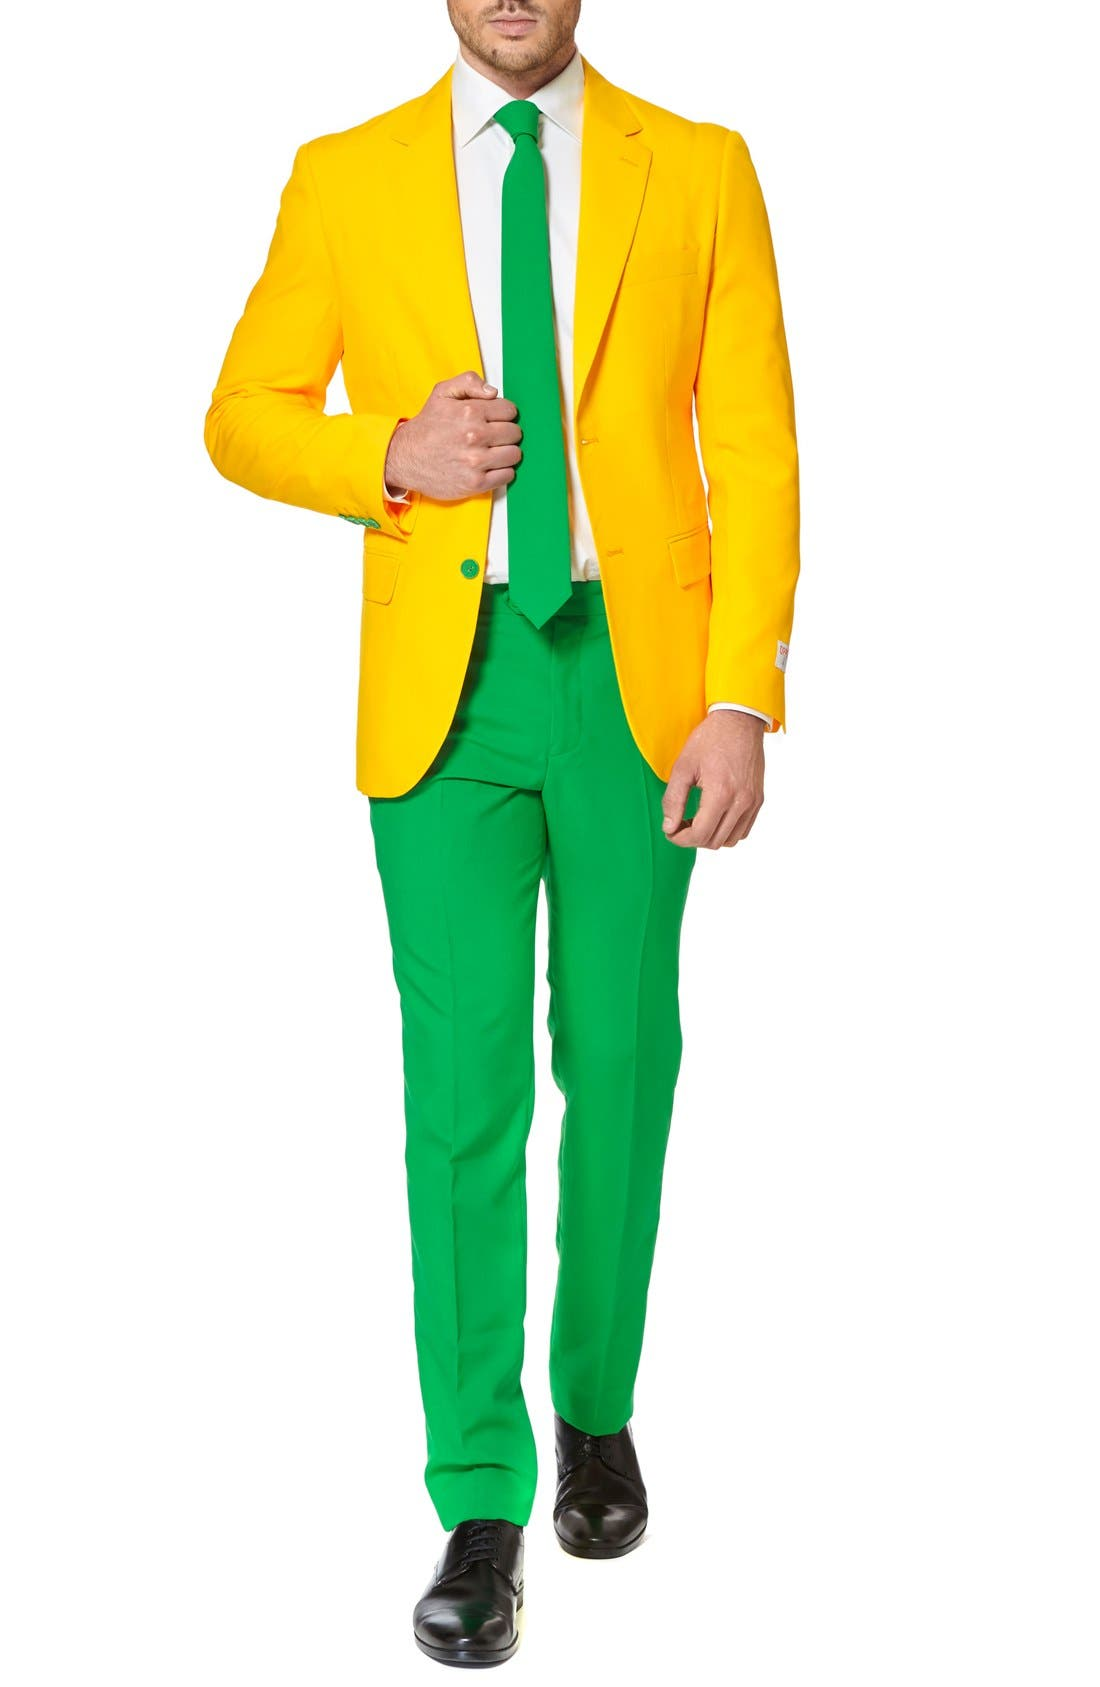 Main Image - OppoSuits 'Green & Gold' Trim Fit Suit with Tie